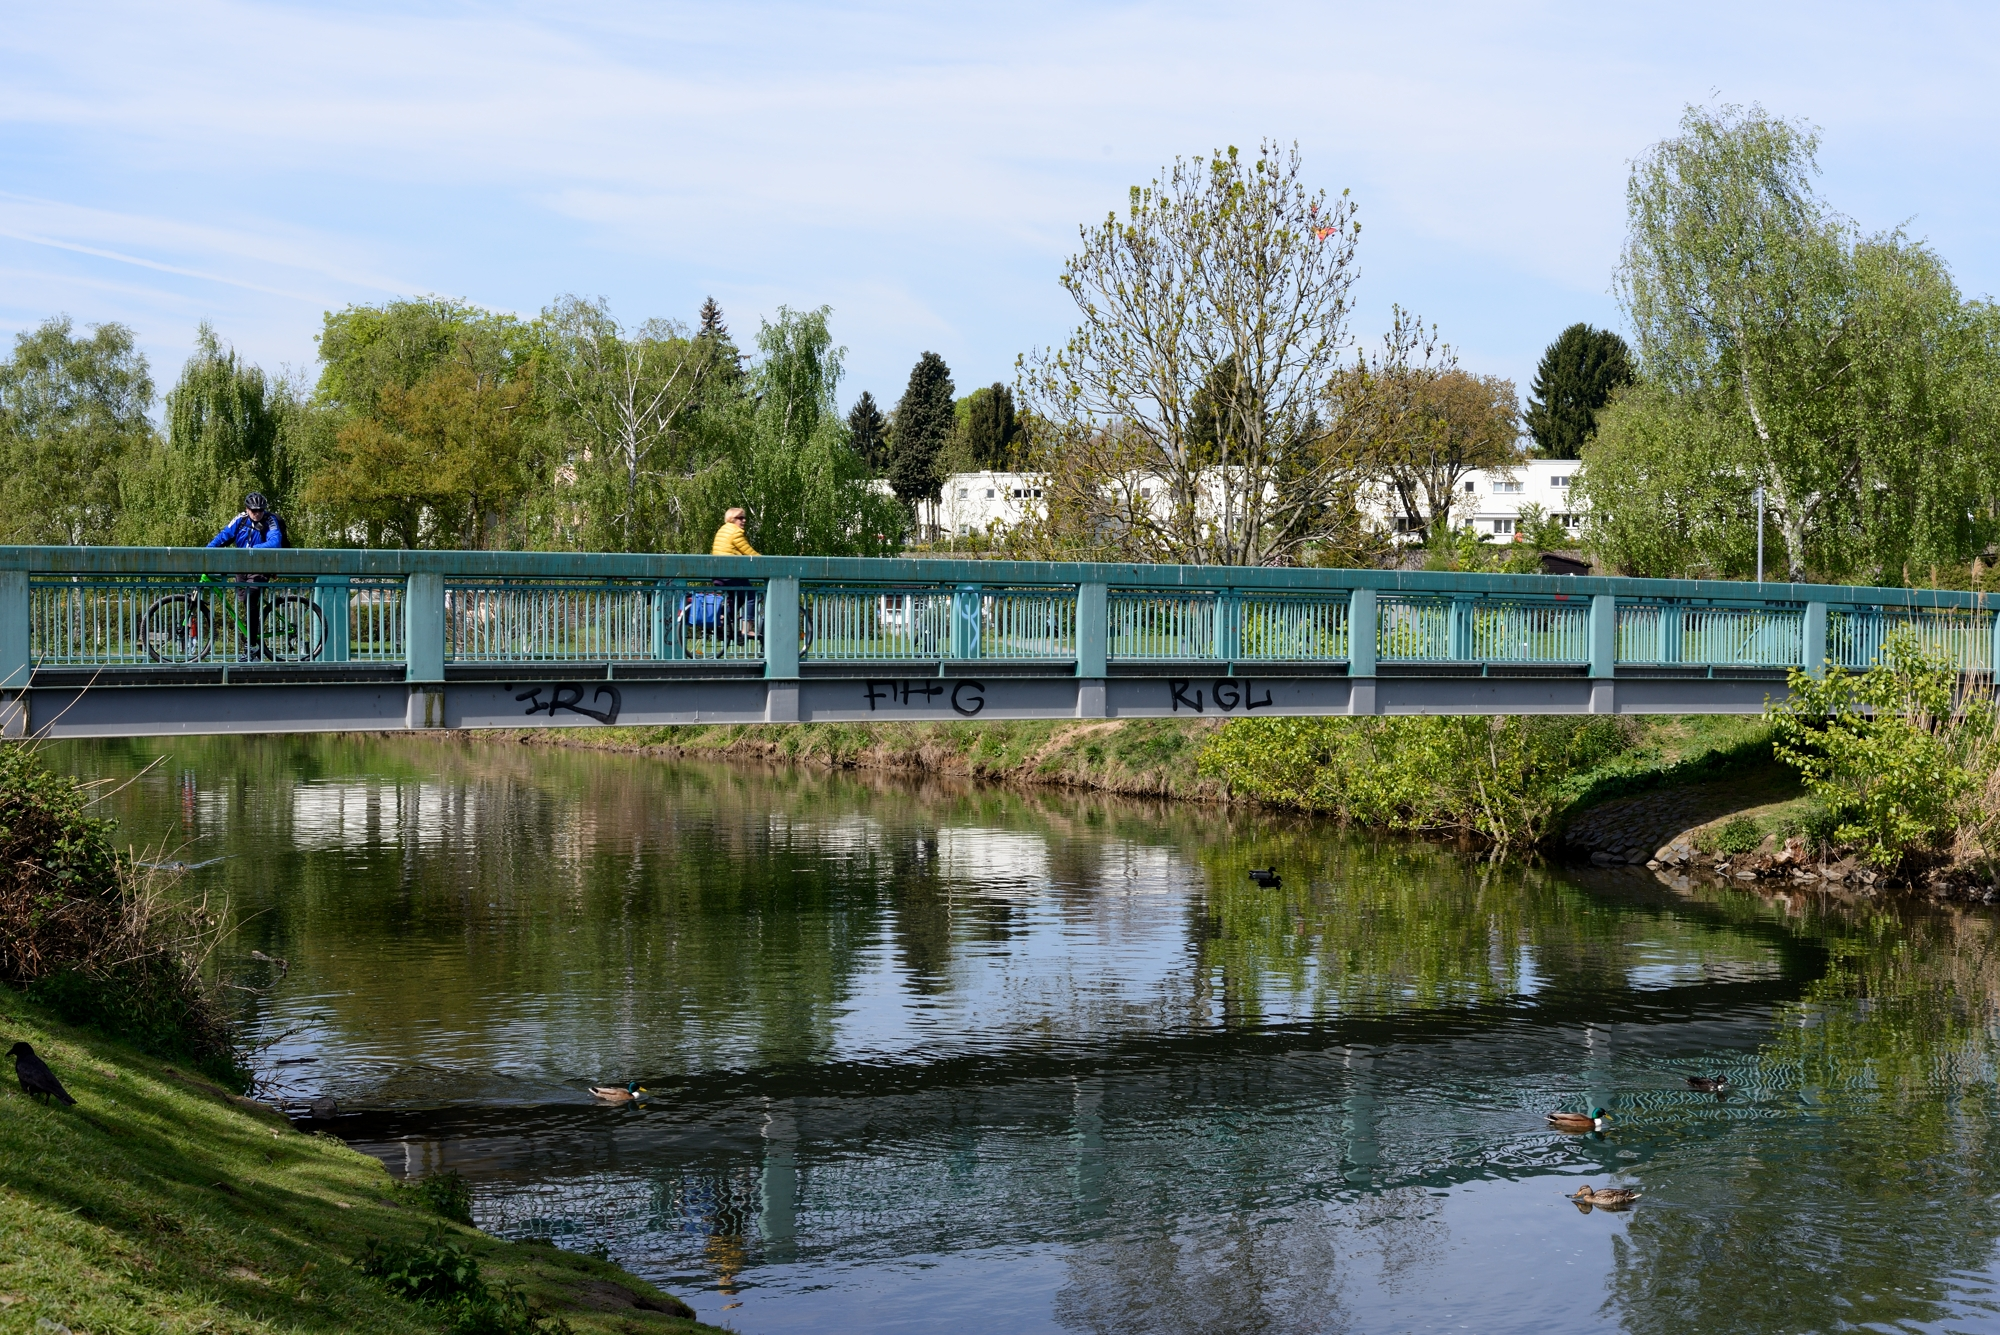 Bridge at Am Bubeloch, looking downstream